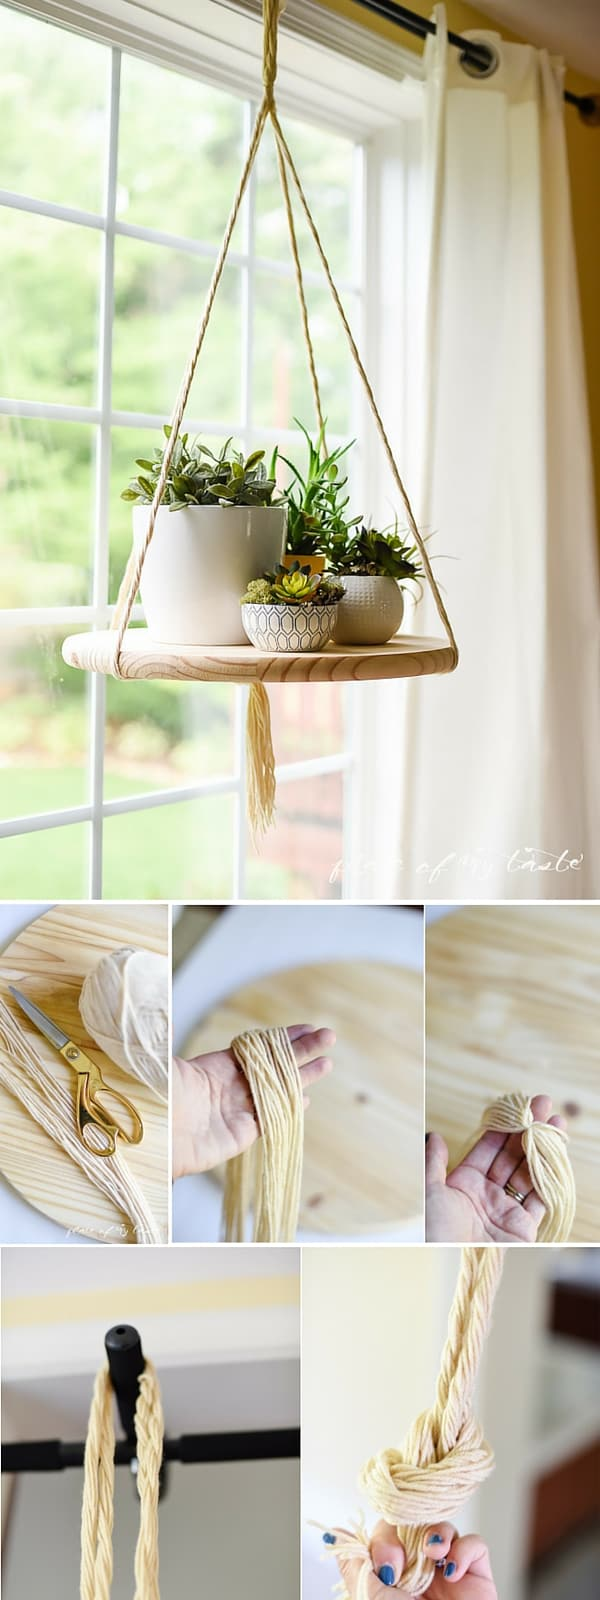 My Home Decor Guide: DIY FLOATING SHELF To Display Your Plants Or Other Decor Items